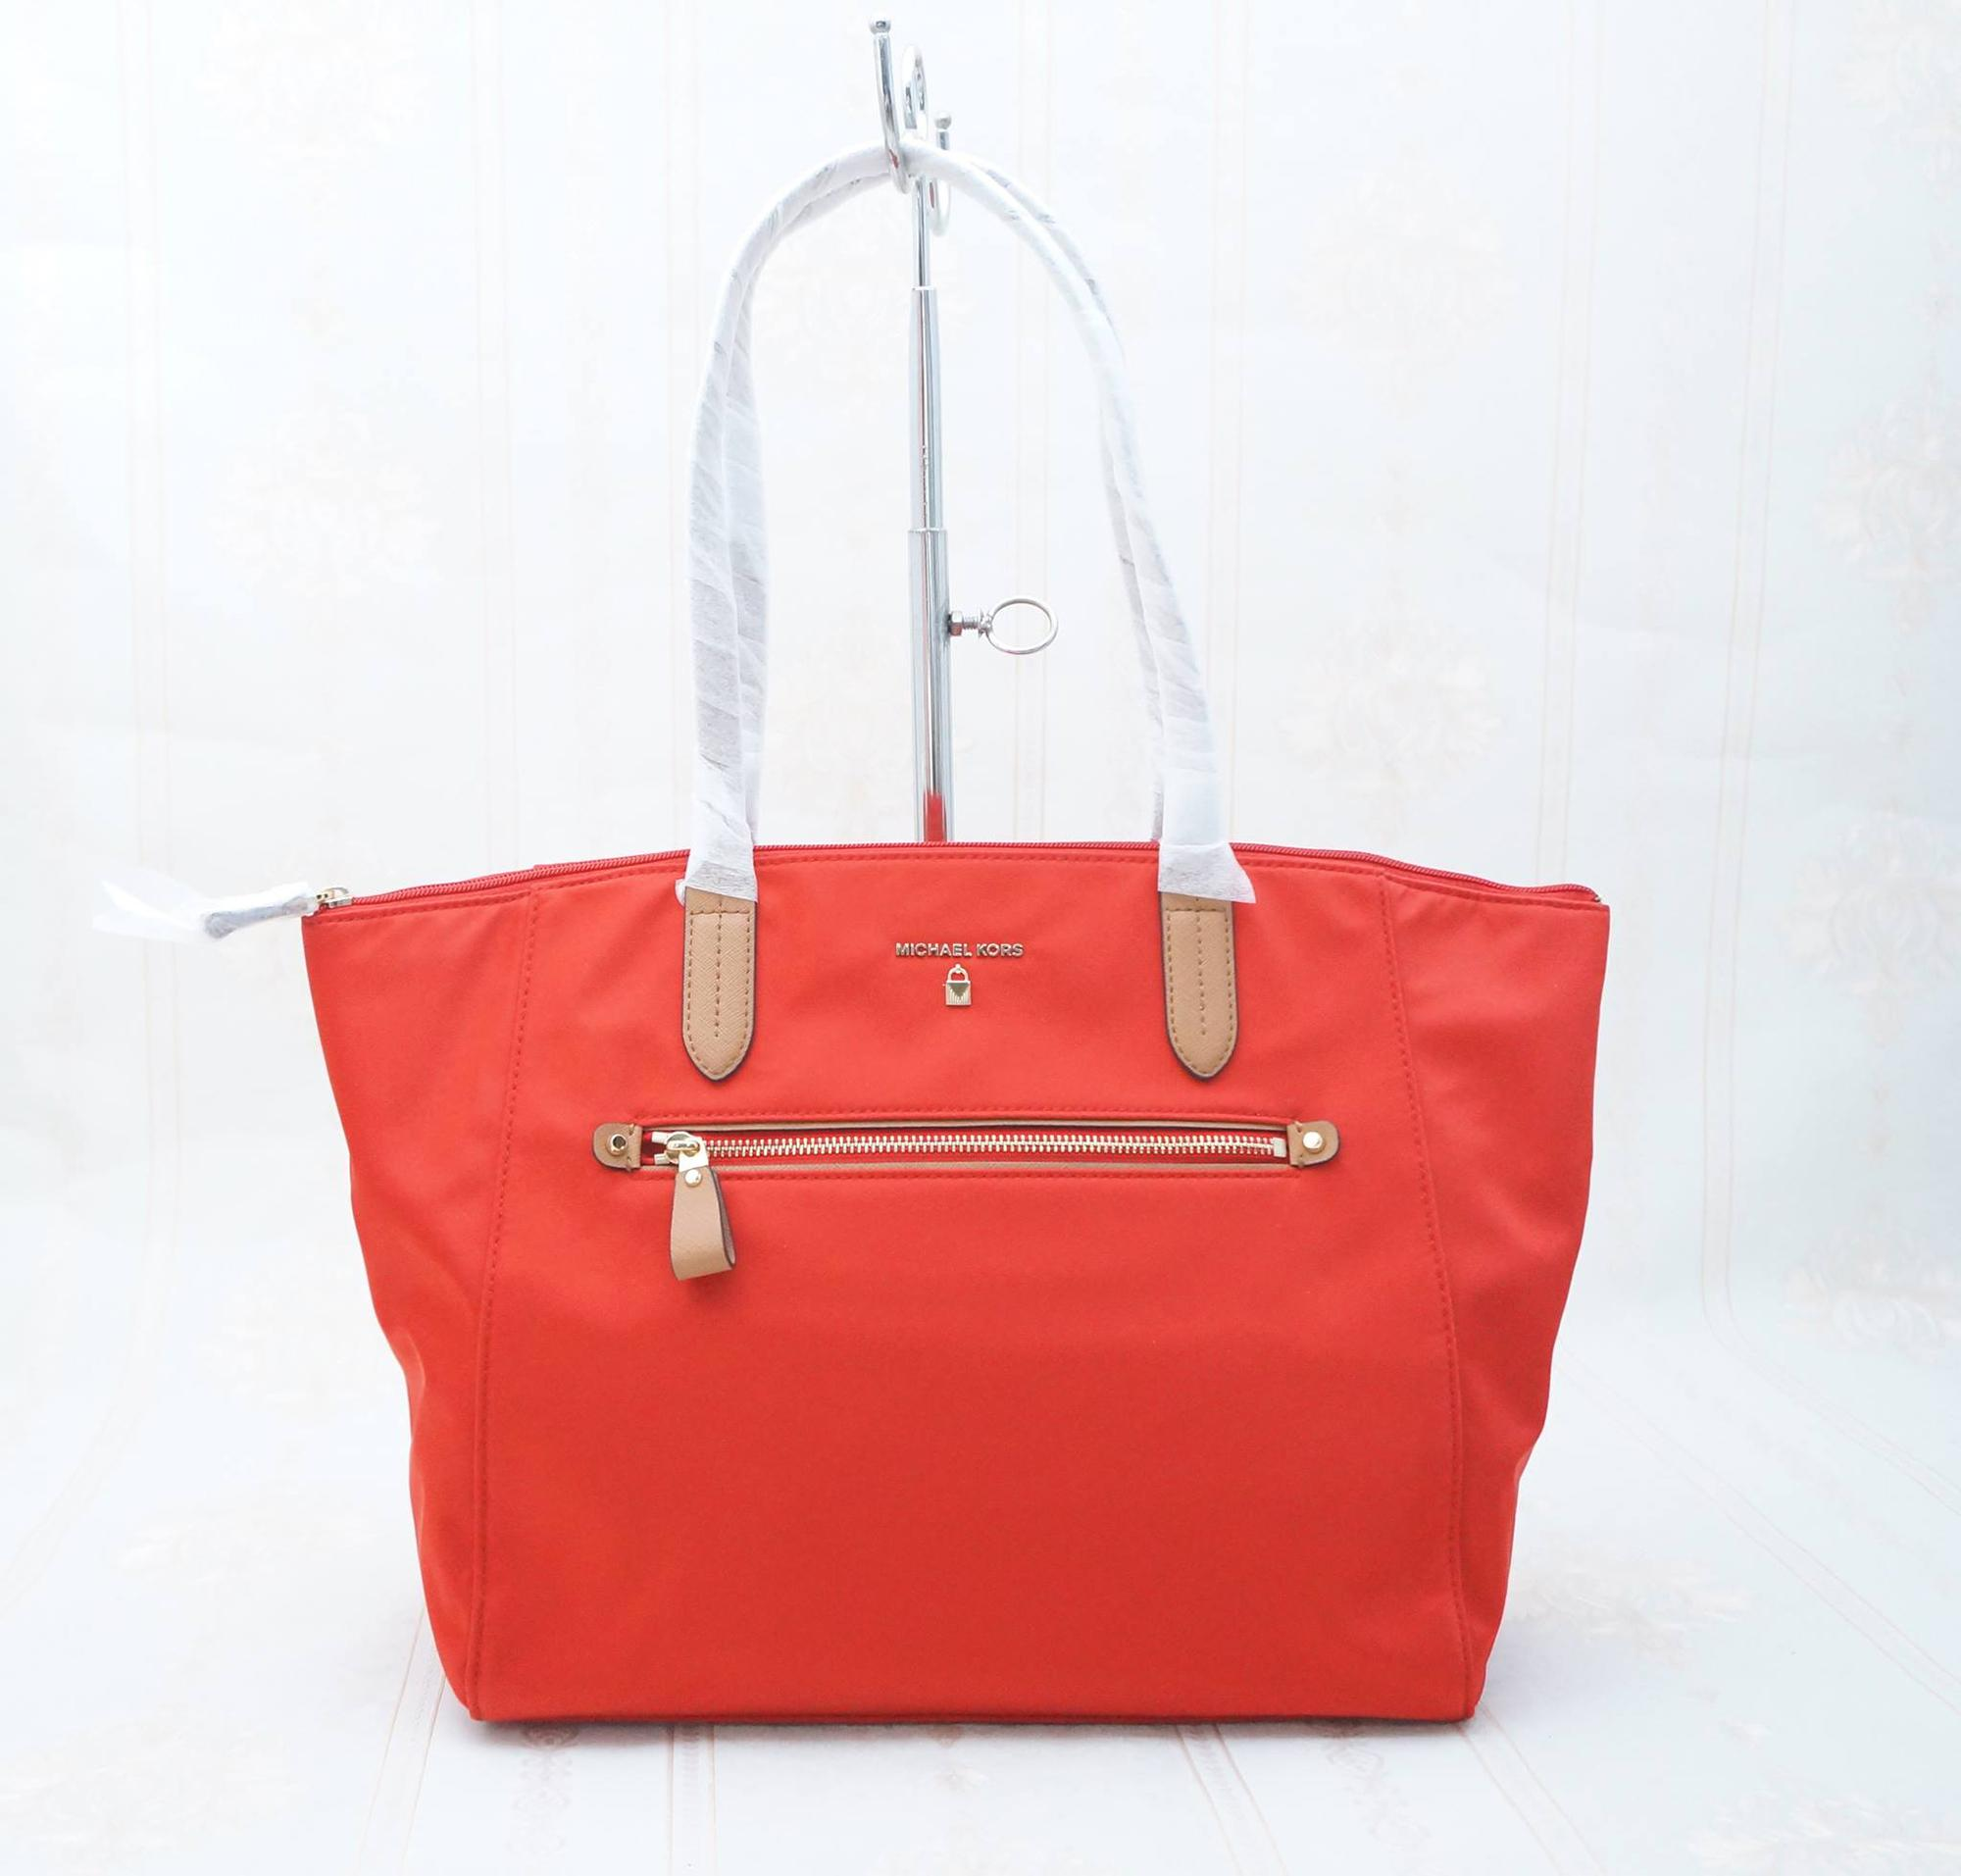 MICHAEL KORS LARGE KELSEY BRIGHT RED